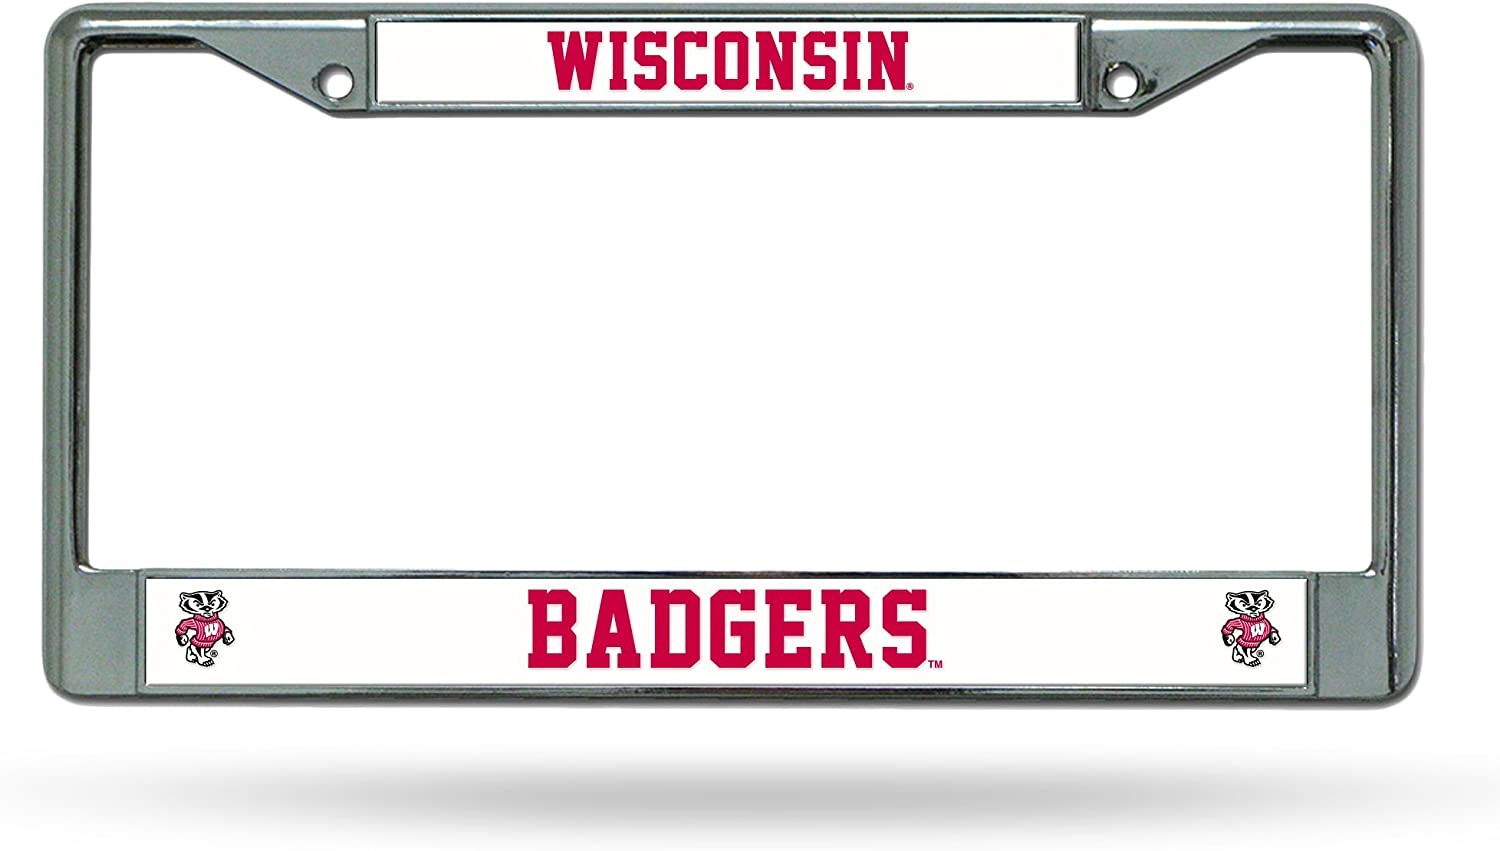 Rico Industries Wisconsin Badgers Chrome License Plate Frame Metal Tag Cover EZ View Carbon Fiber Design All Over Style Heavy Gauge University of Inc